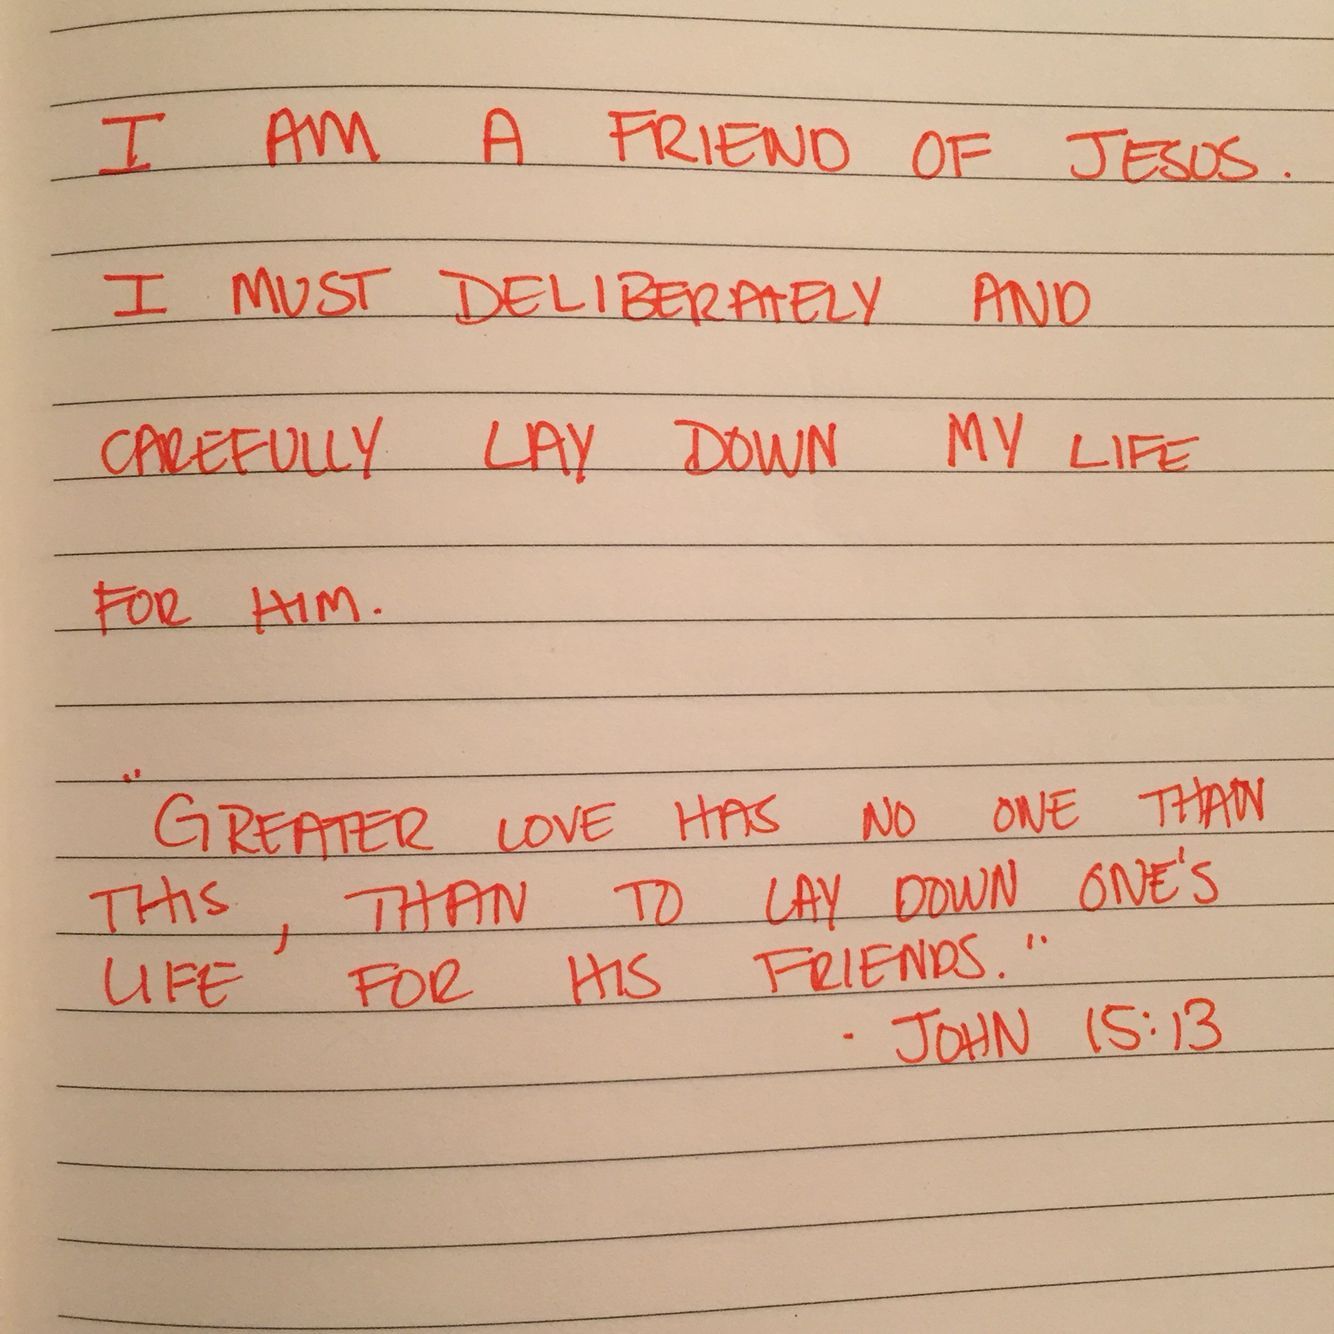 """This is some of what I wrote in my prayer journal tonight.  """"I am a friend of Jesus. I must  deliberately and carefully lay down my life for him."""" """"Greater love has no one than this, than to lay down one's life for his friends."""" John 15:13  Jesus commands us to love each other!   -Shasta"""